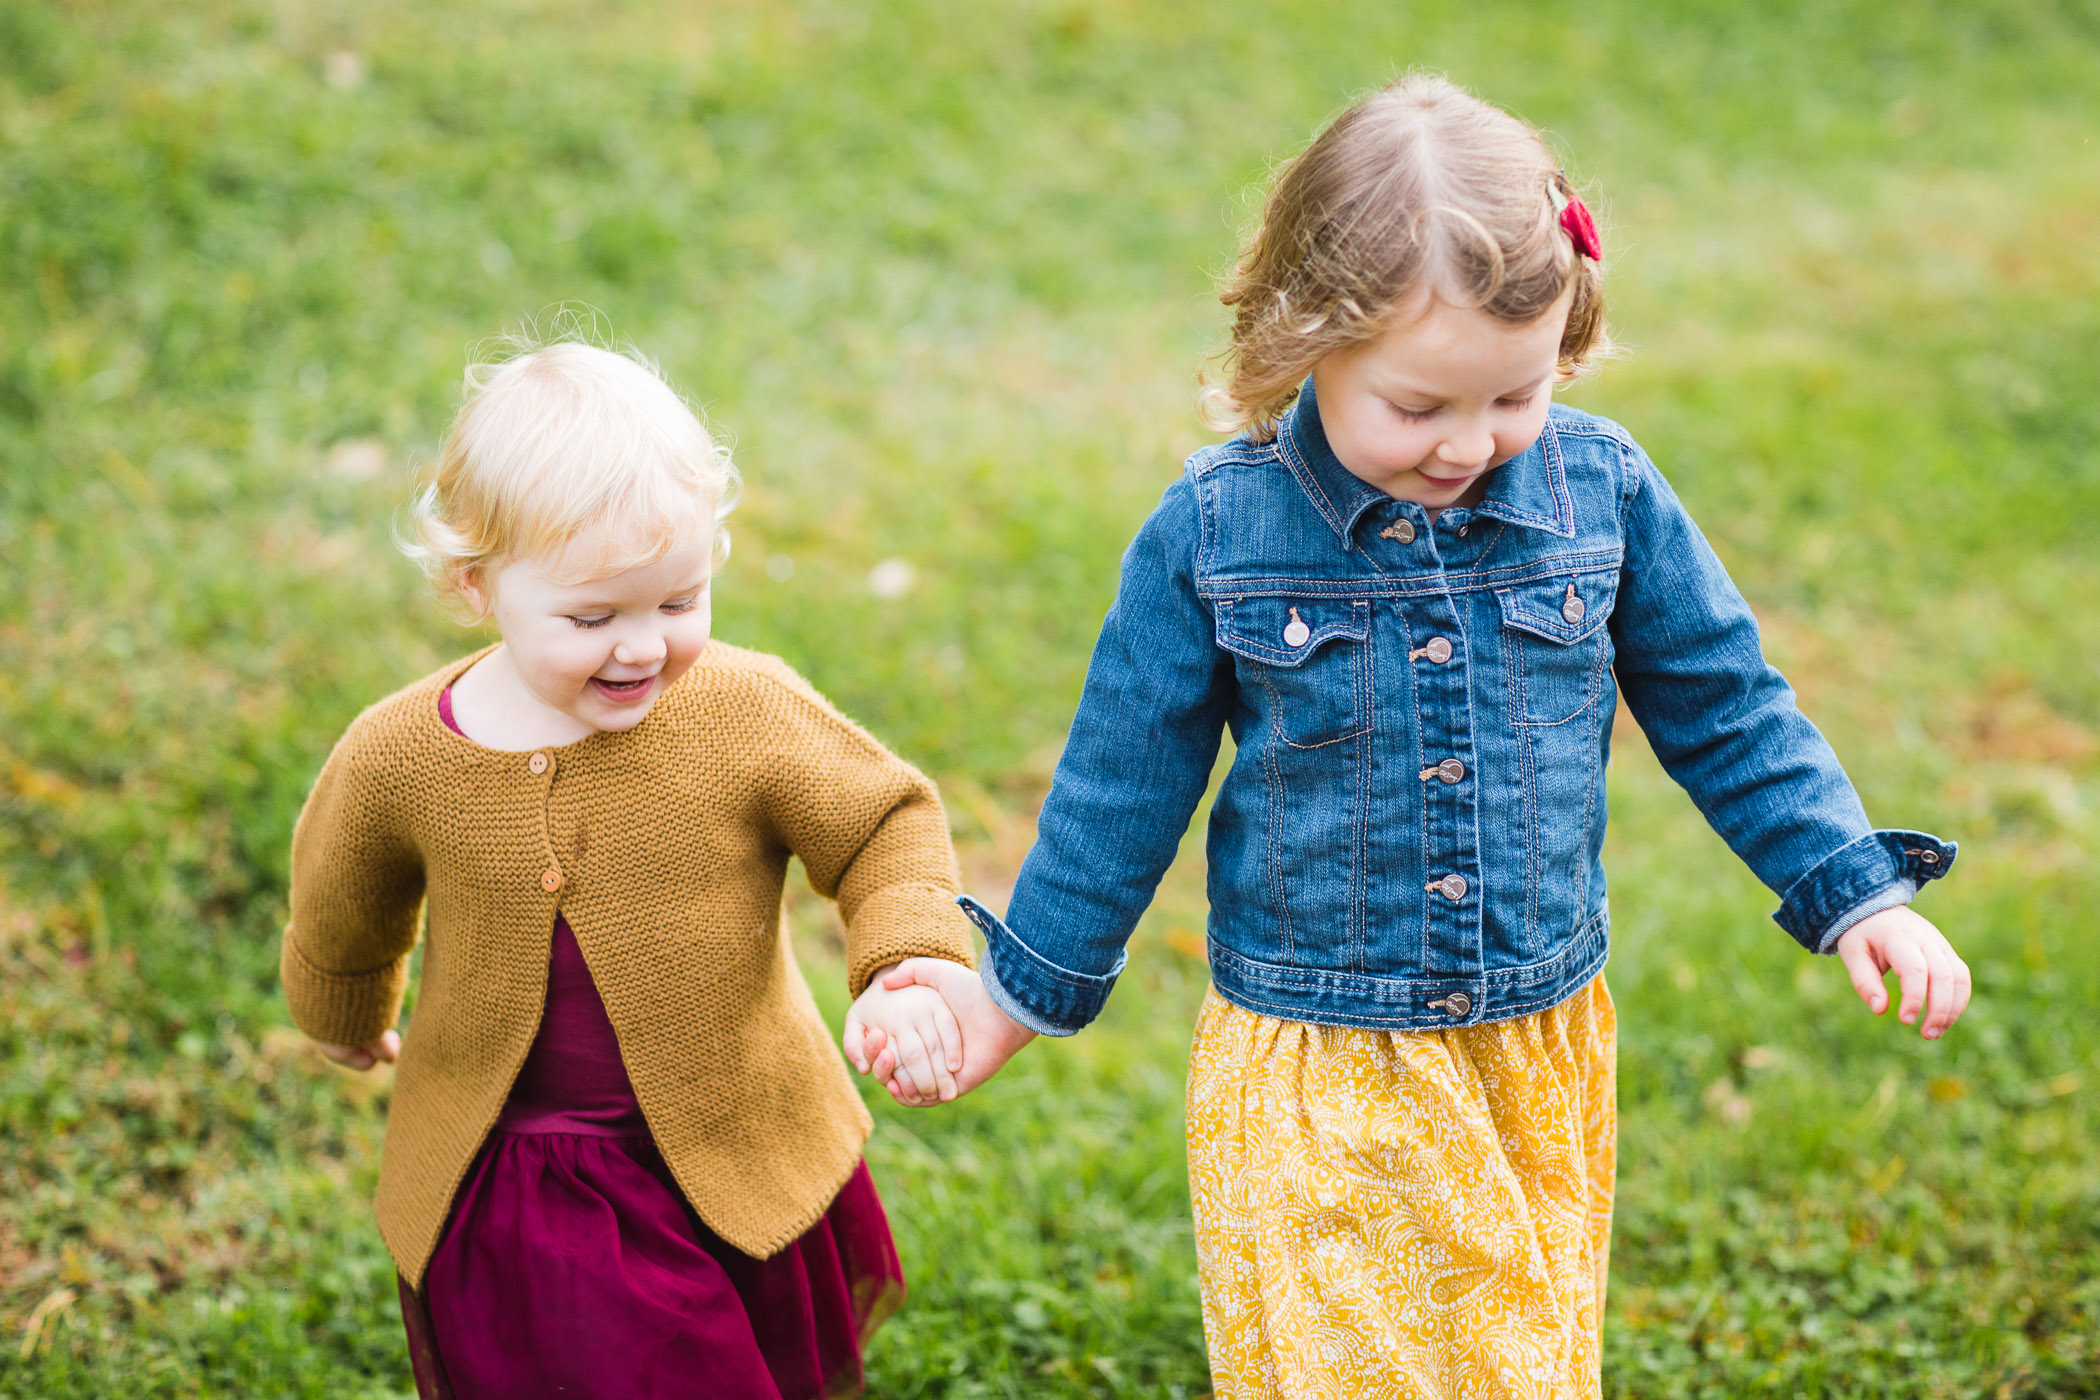 A Colorful Two-Part Autumn Family Session from Felipe 29